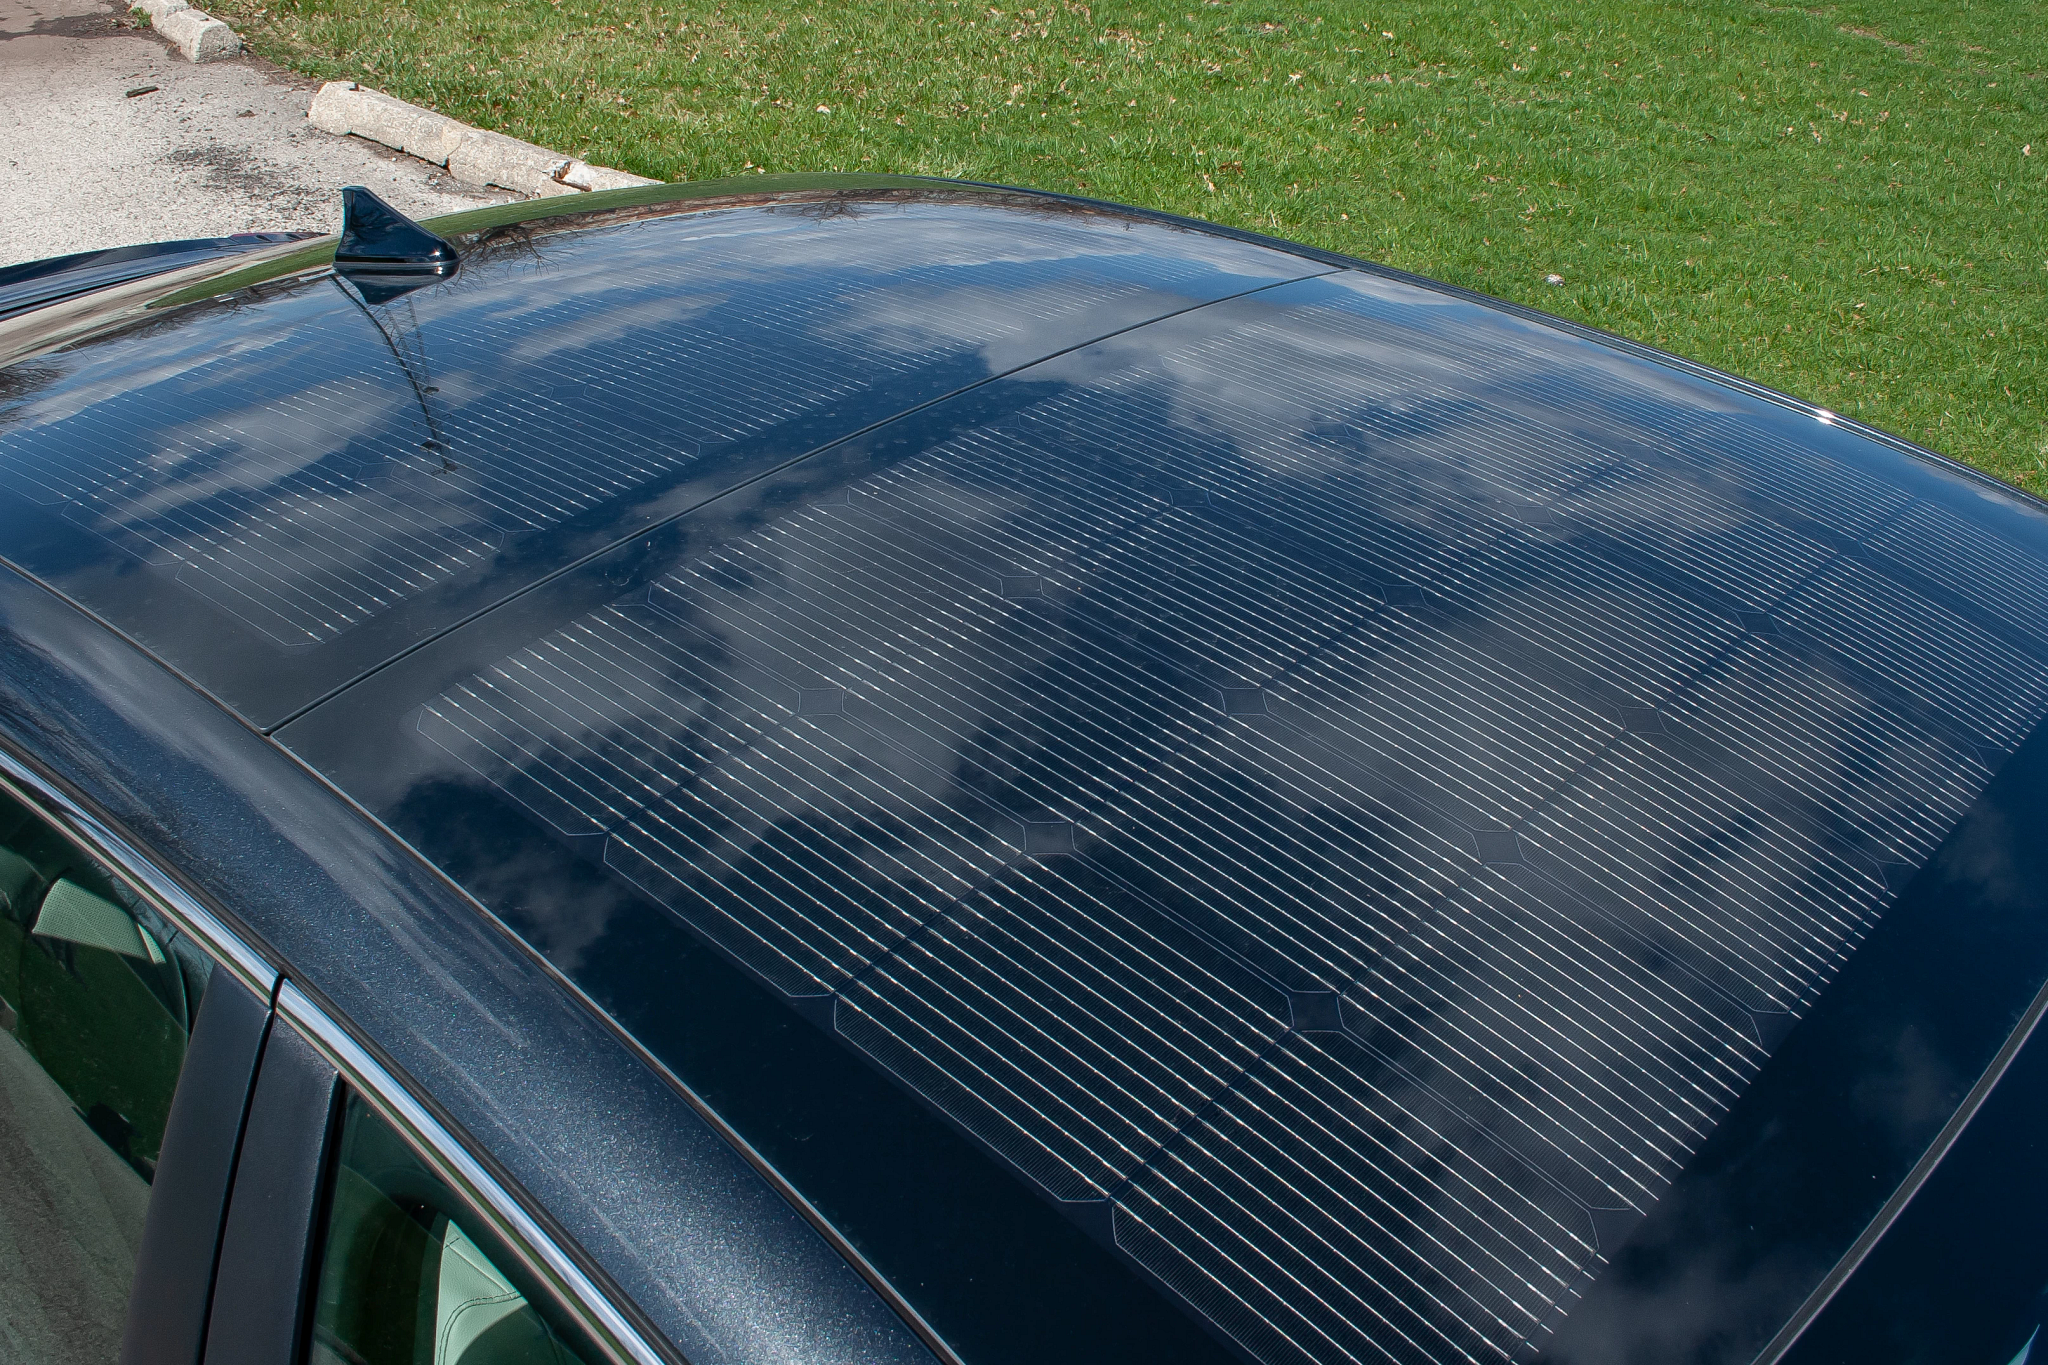 2020 Hyundai Sonata Hybrid: What's the Deal With That Solar Roof?